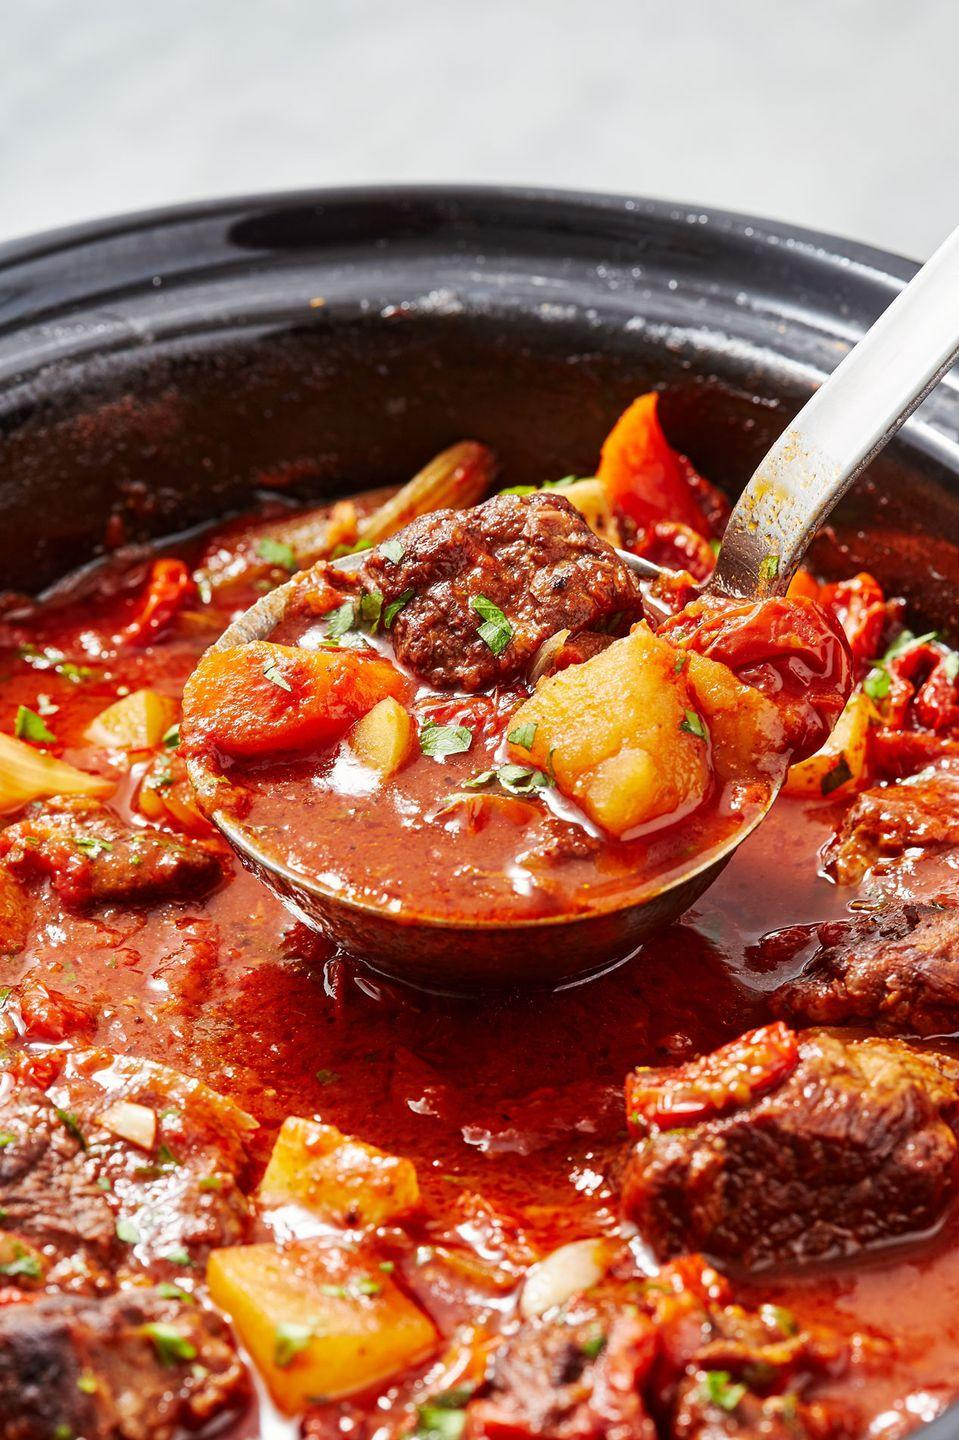 "<p>Rich, hearty stew is the perfect, comforting meal.</p><p>Get the recipe from <a href=""https://www.delish.com/cooking/recipe-ideas/recipes/a49563/slow-cooker-red-wine-beef-stew-recipe/"" rel=""nofollow noopener"" target=""_blank"" data-ylk=""slk:Delish"" class=""link rapid-noclick-resp"">Delish</a>.</p><p><strong><a class=""link rapid-noclick-resp"" href=""https://www.amazon.com/Hamilton-Beach-33262A-Cooker-6-Quart/dp/B00IWOJSJK?tag=syn-yahoo-20&ascsubtag=%5Bartid%7C1782.g.2010%5Bsrc%7Cyahoo-us"" rel=""nofollow noopener"" target=""_blank"" data-ylk=""slk:BUY NOW"">BUY NOW</a><em> Hamilton Beach Slow Cooker, $28, </em><em><span class=""redactor-unlink"">amazon.com</span></em></strong><br></p>"